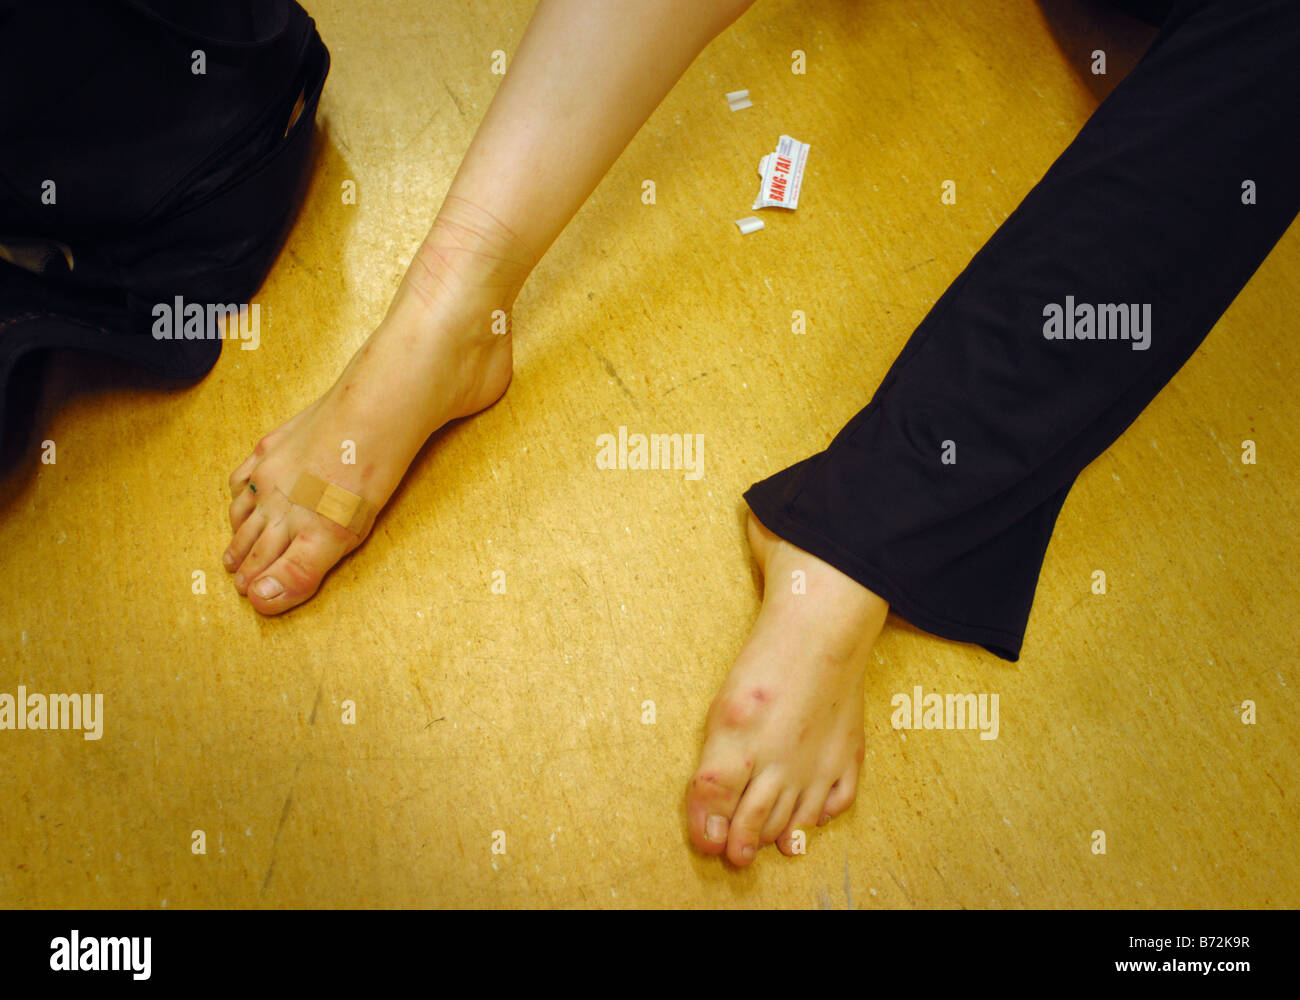 A ballet dancers sore feet behind scenes during rehearsals in Poland - Stock Image